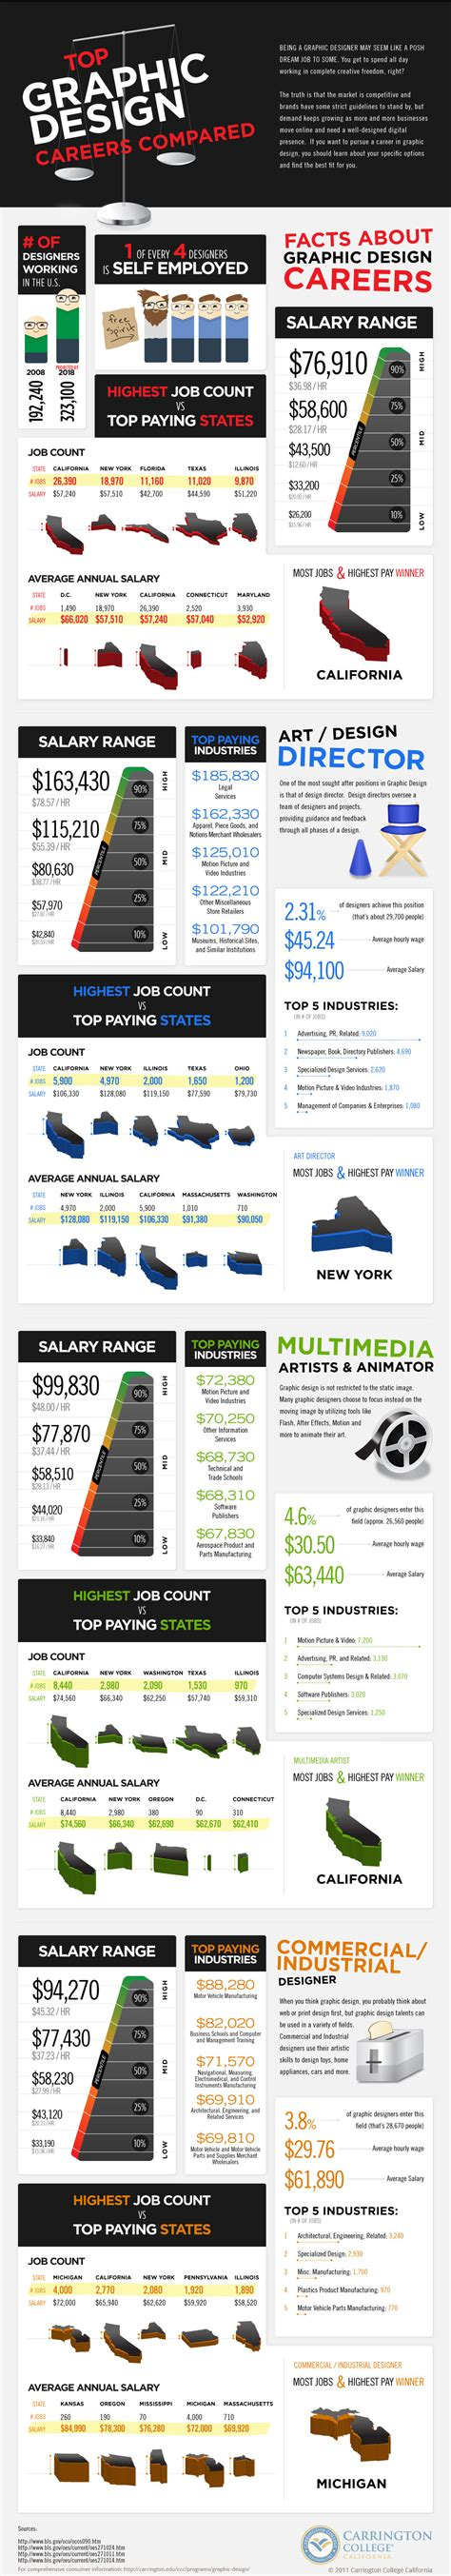 careers in graphic design how much do graphic designers make